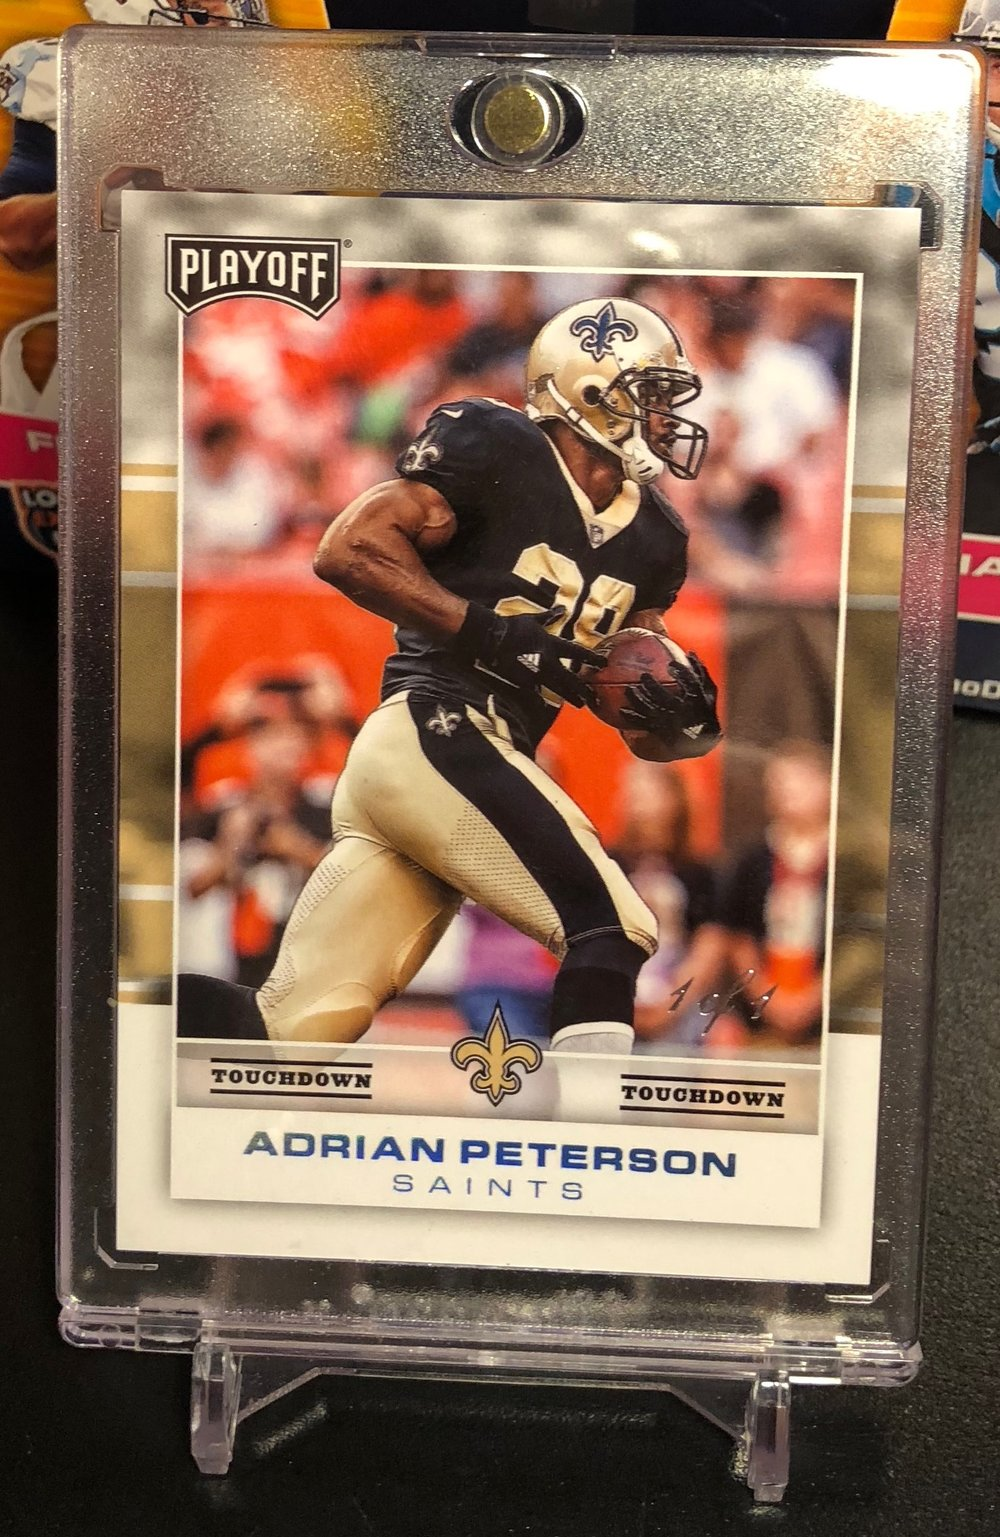 2017 Panini Playoff Adrian Peterson Touchdown 1/1